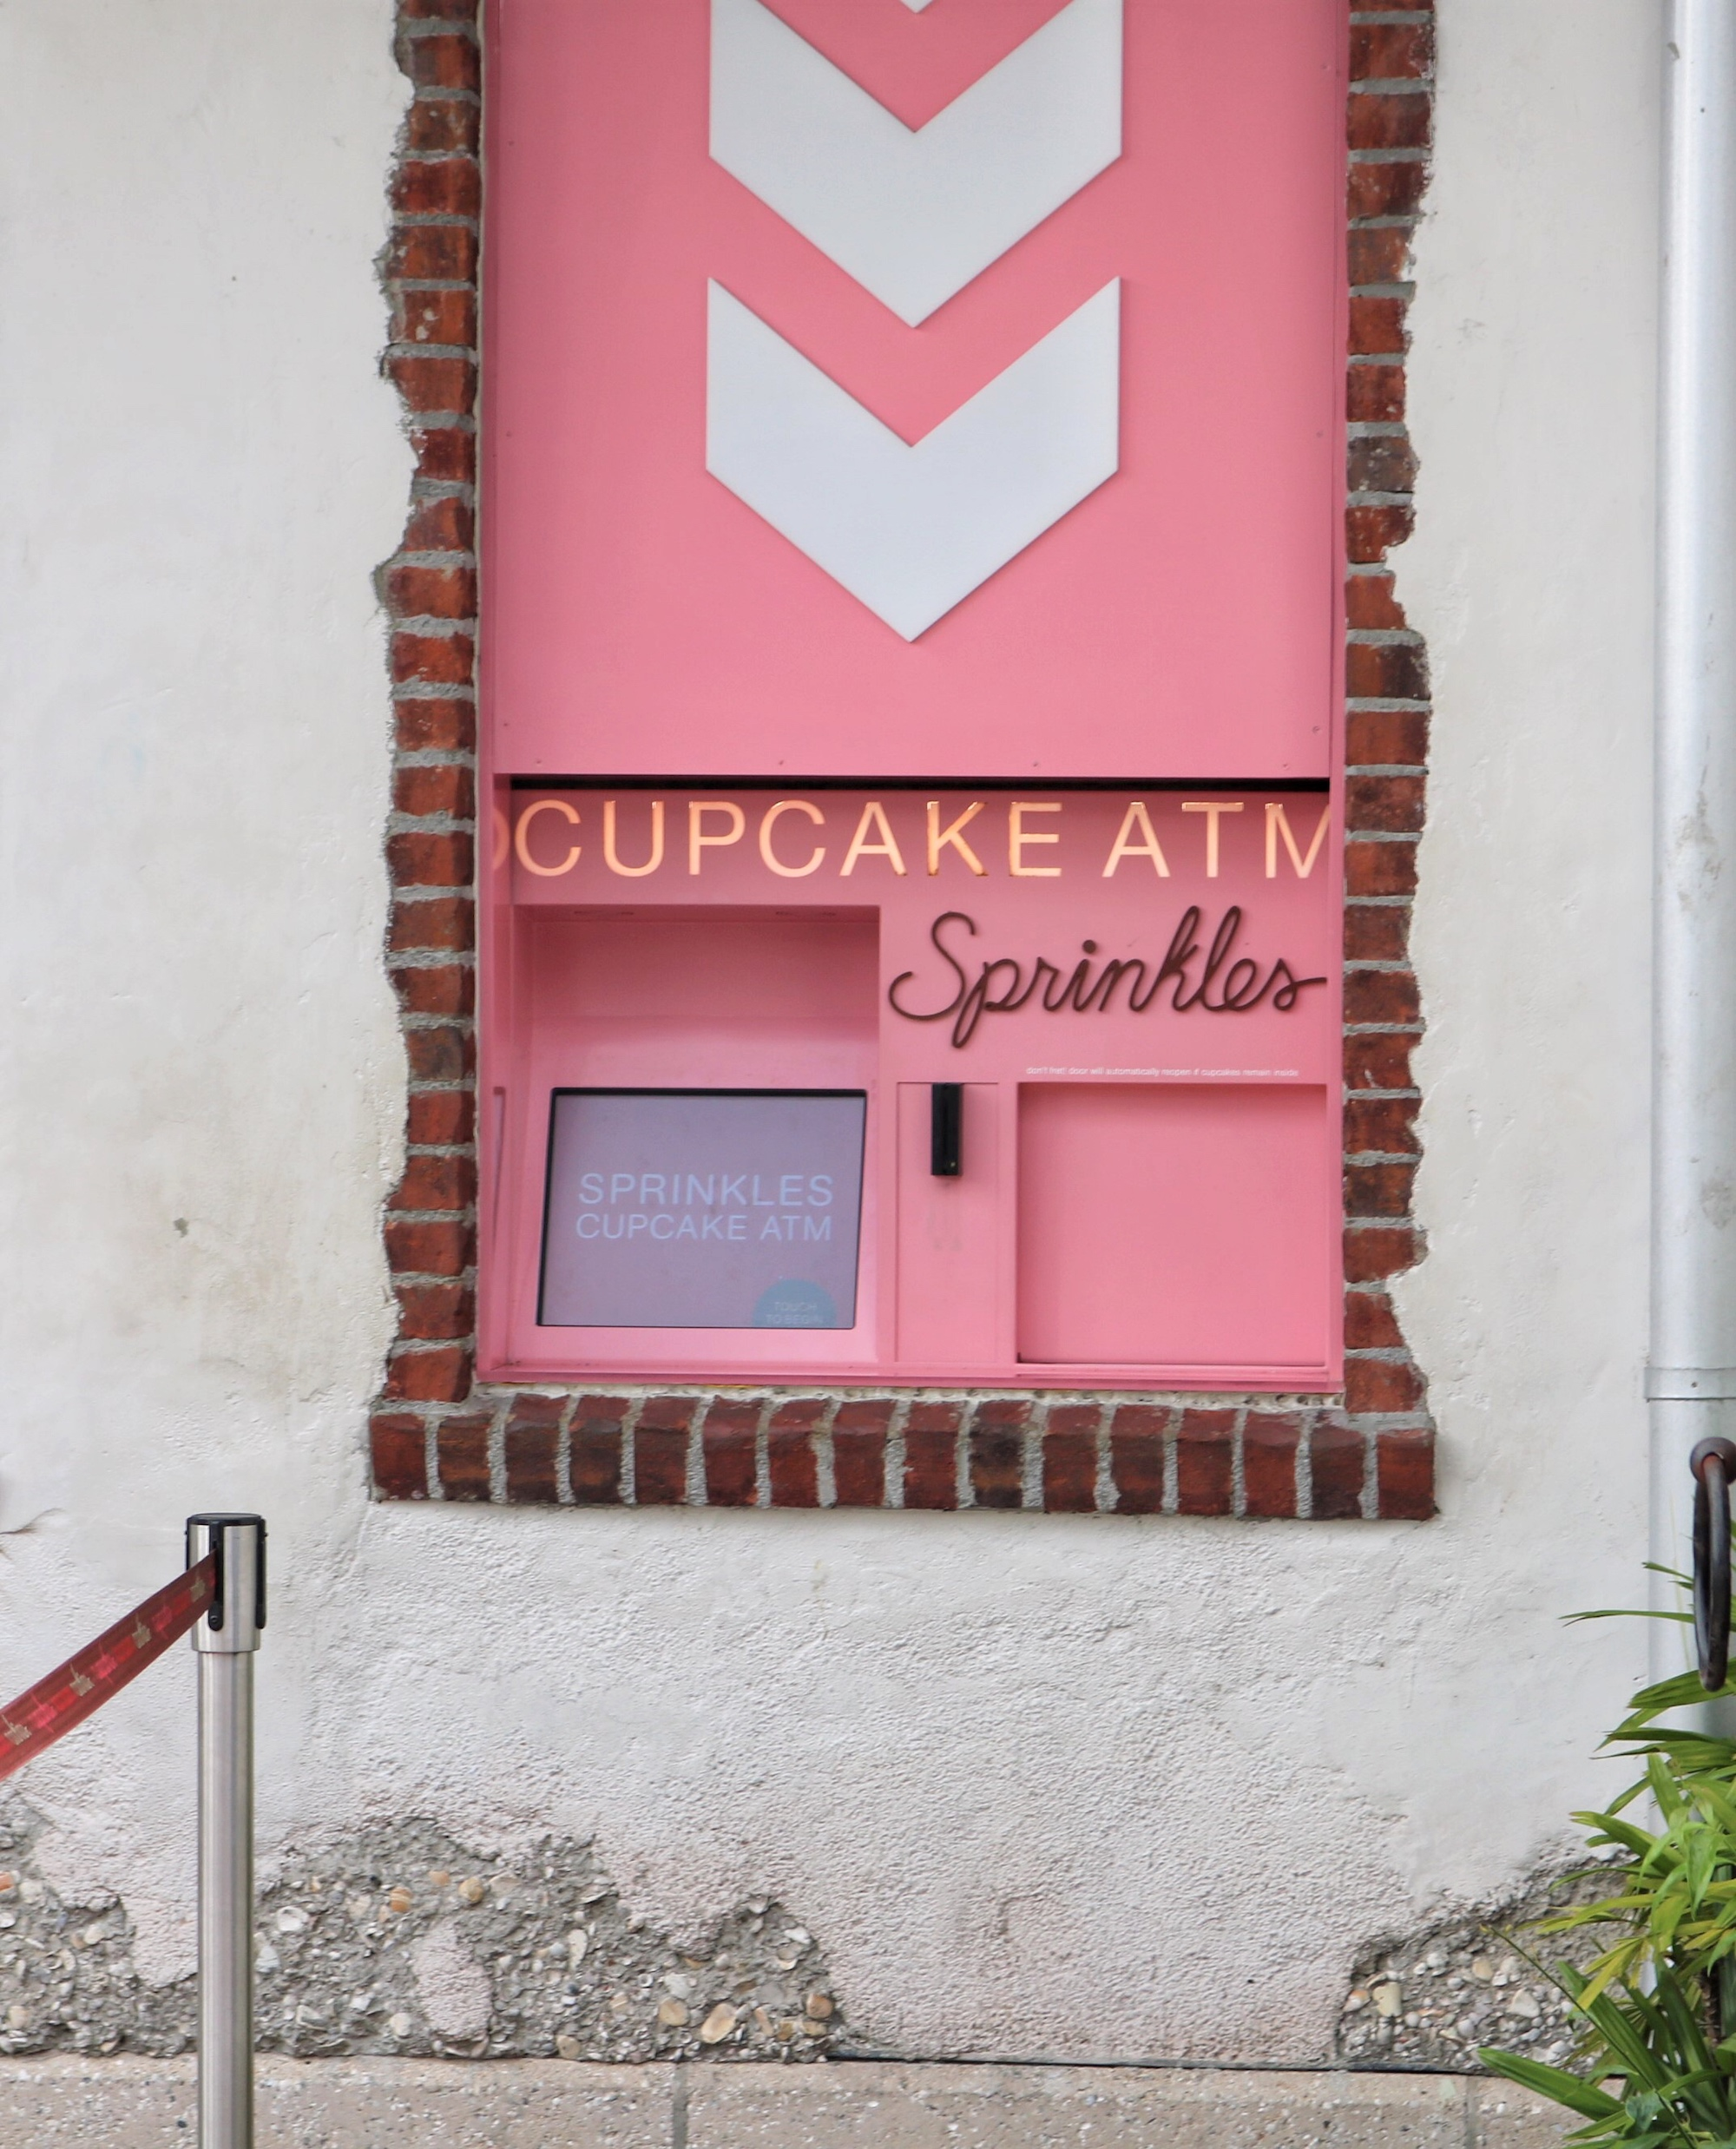 Sprinkles Cupcakes ATM at Disney Springs